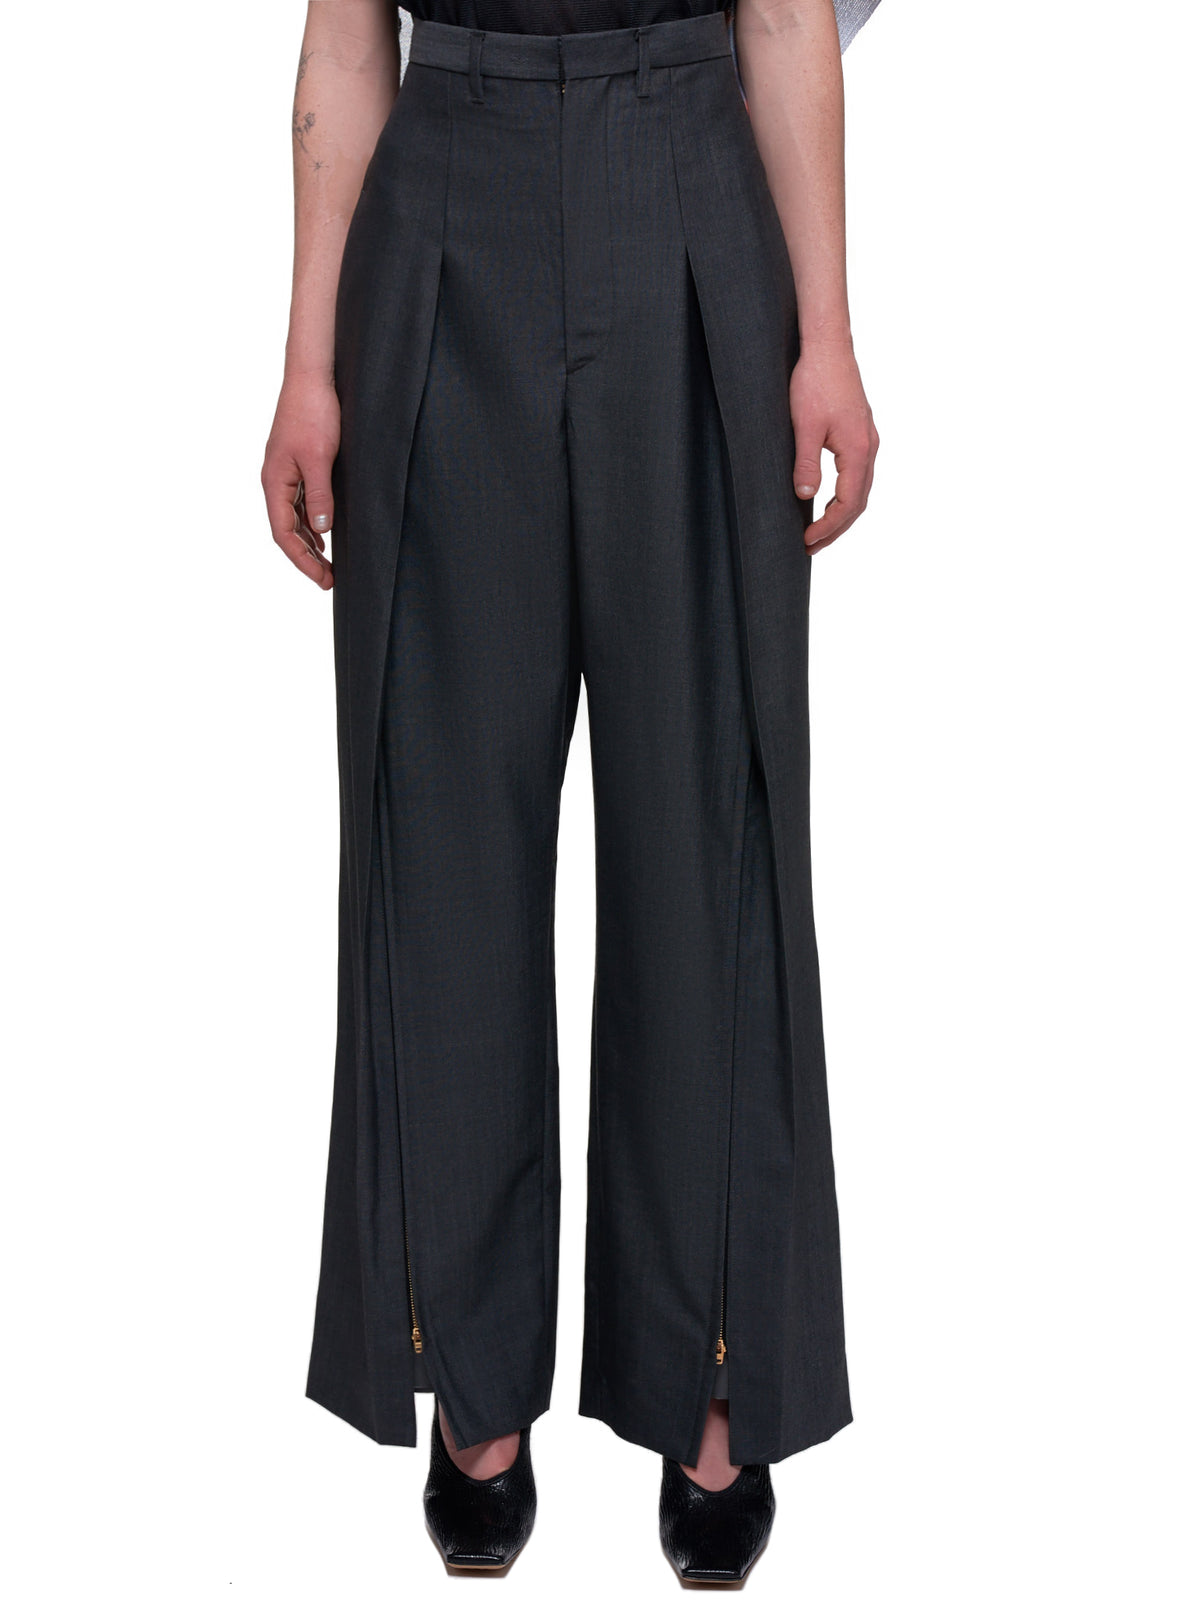 Toga Archives Pants | H.Lorenzo Front